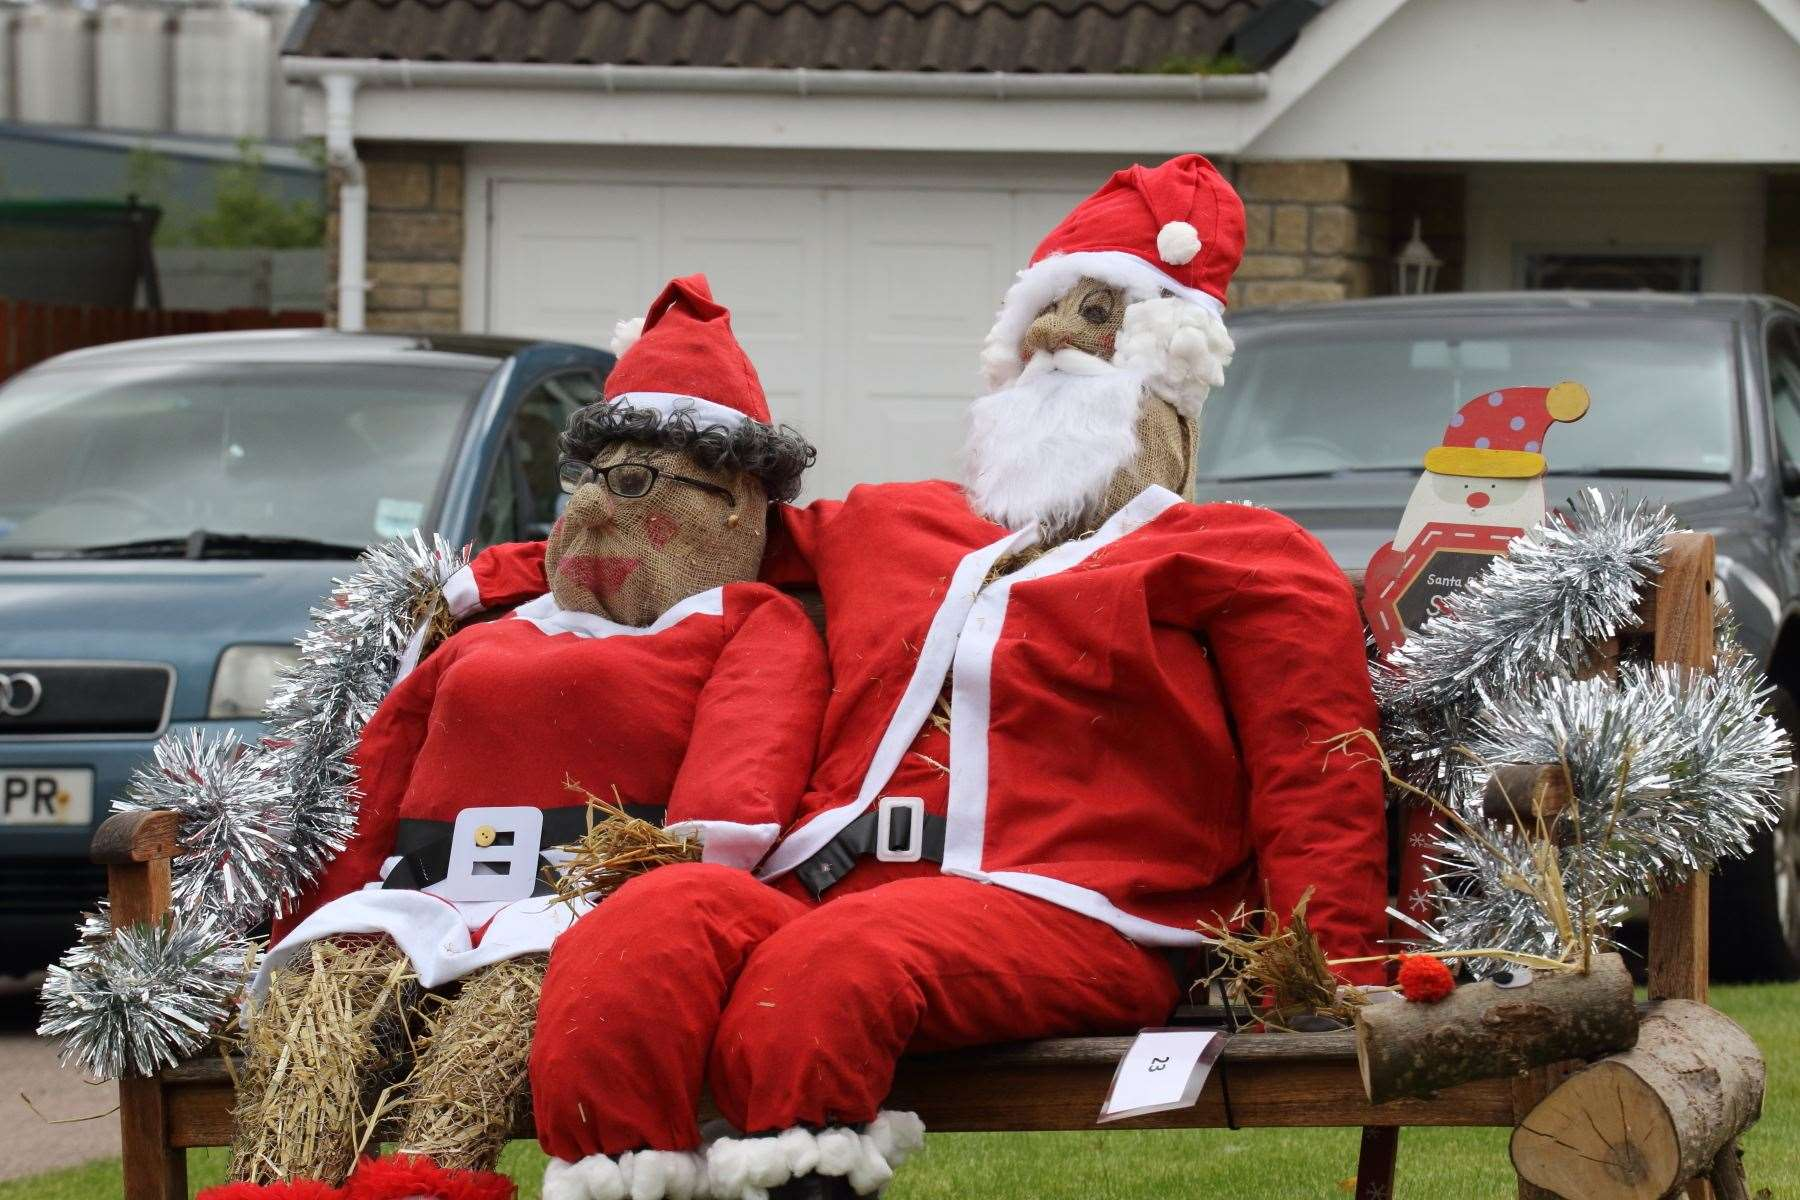 Christmas comes early at the Ellon scarecrow festival